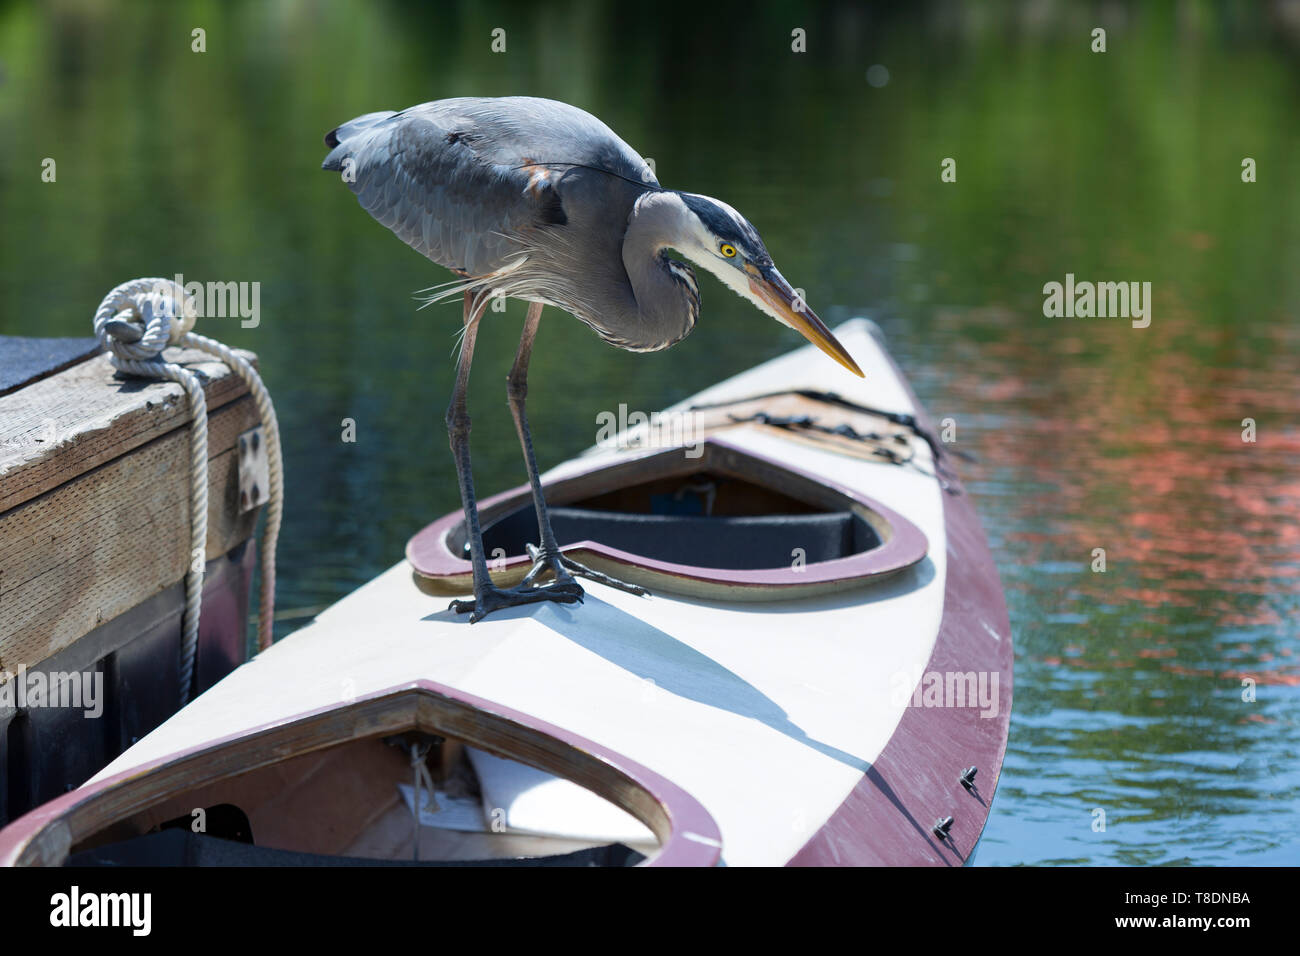 Seattle, Washington: A Great Blue Heron stalks prey while perched on a kayak at the Center for Wooden Boats in South Lake Union. - Stock Image